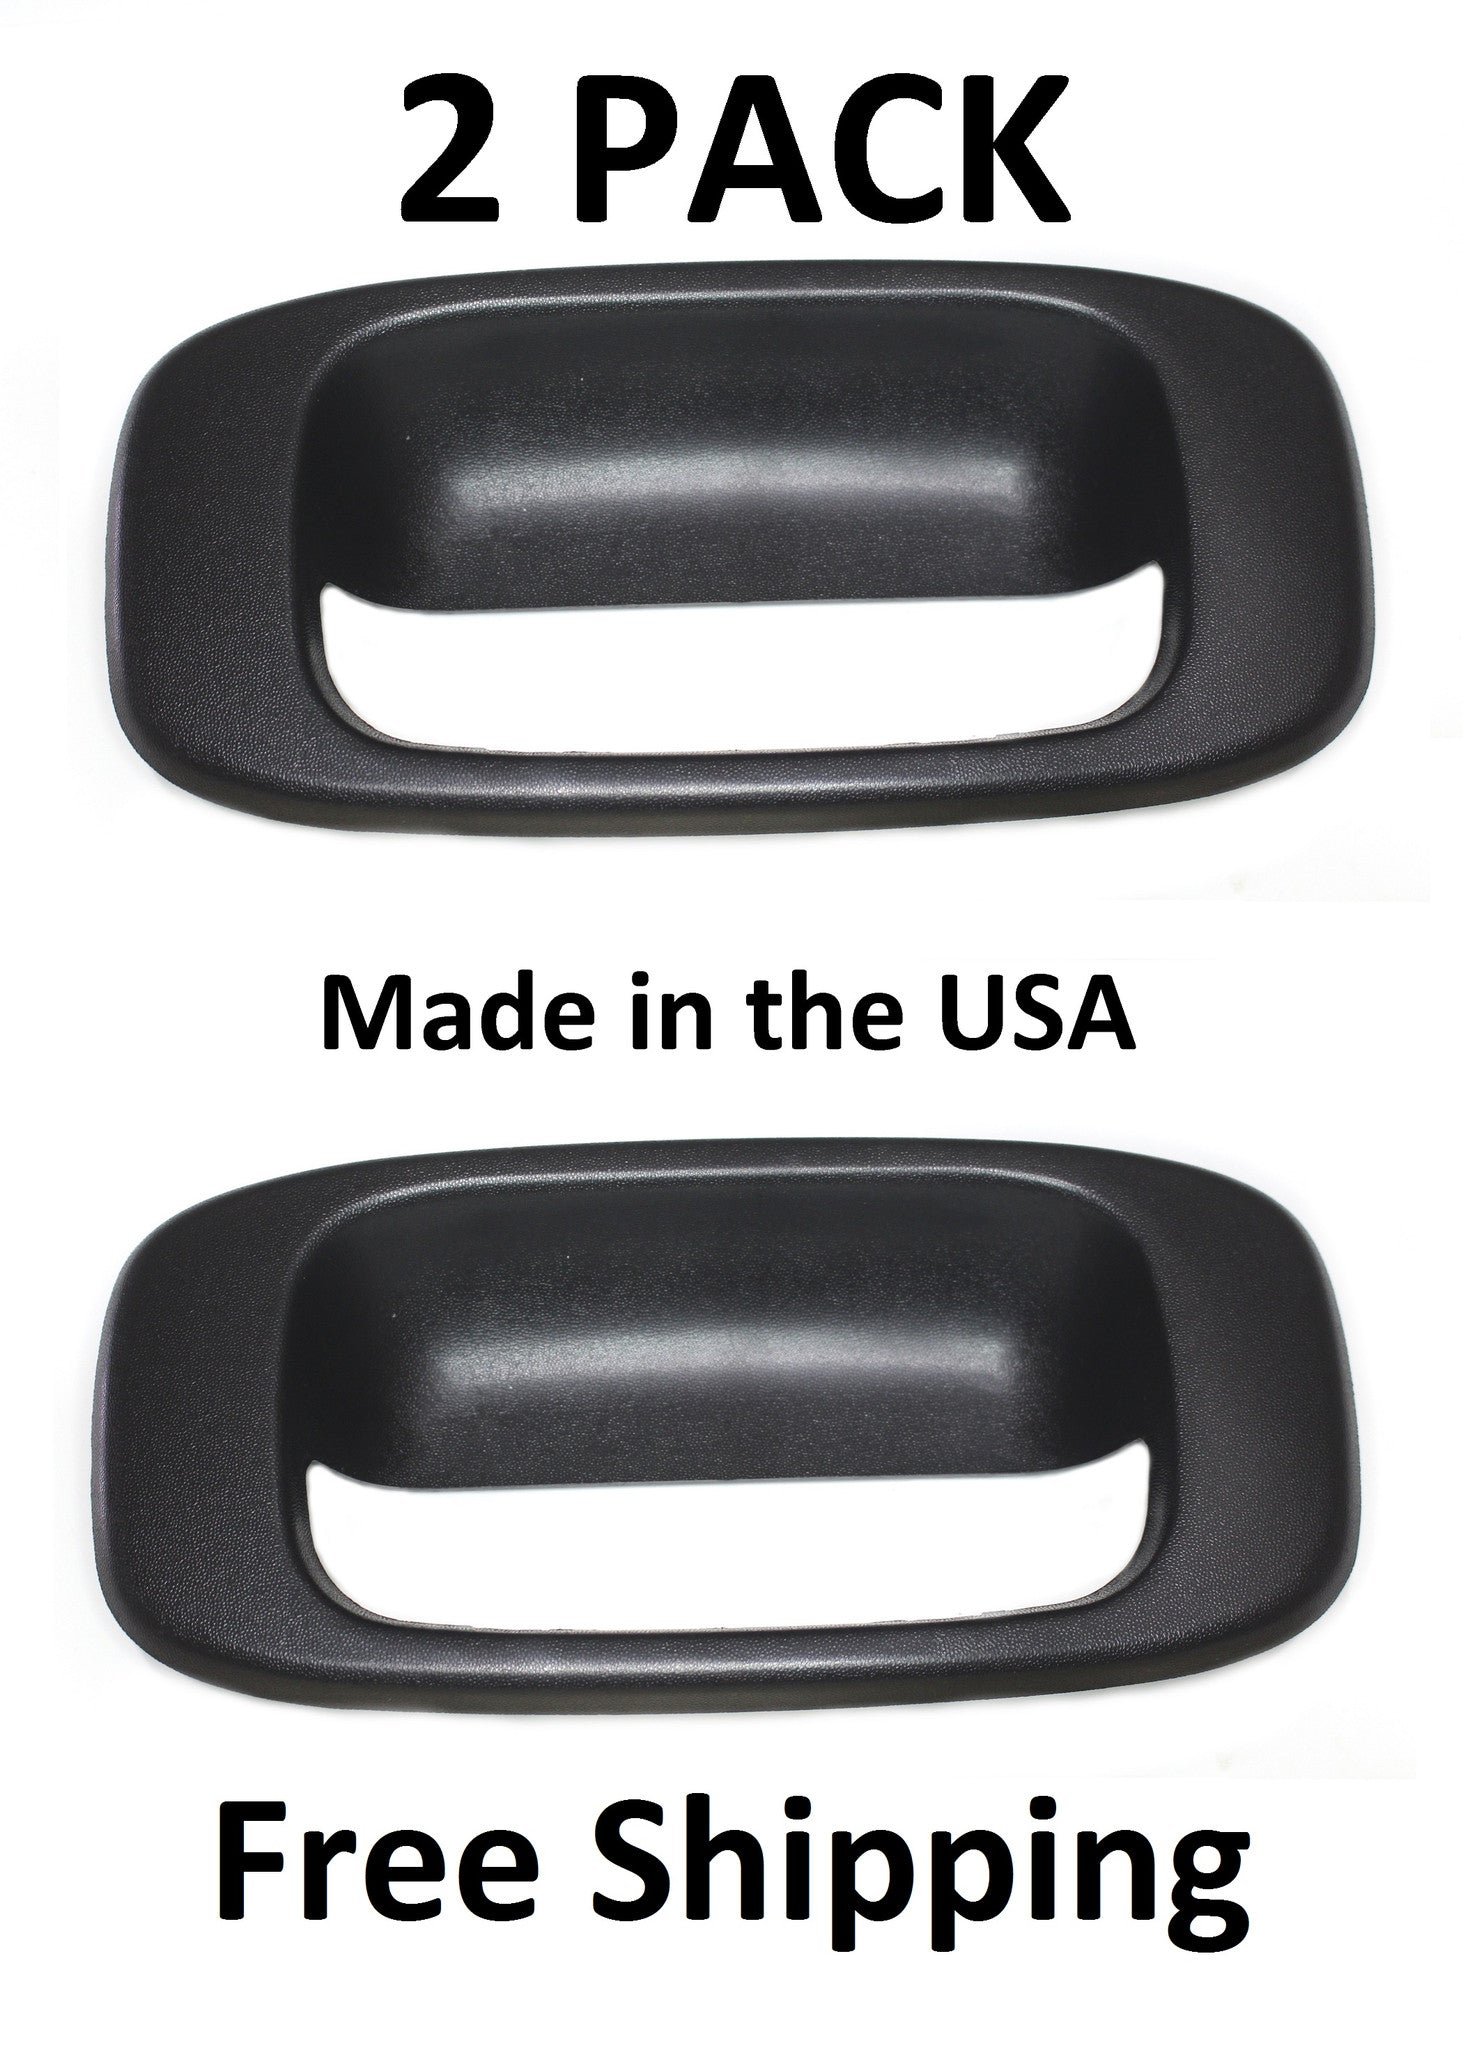 APA Replacement For 1988-2002 C//K 1500 2500 3500 Pickup Truck Tailgate Handle and Bezel Set 15991785 15991786 GM1915101